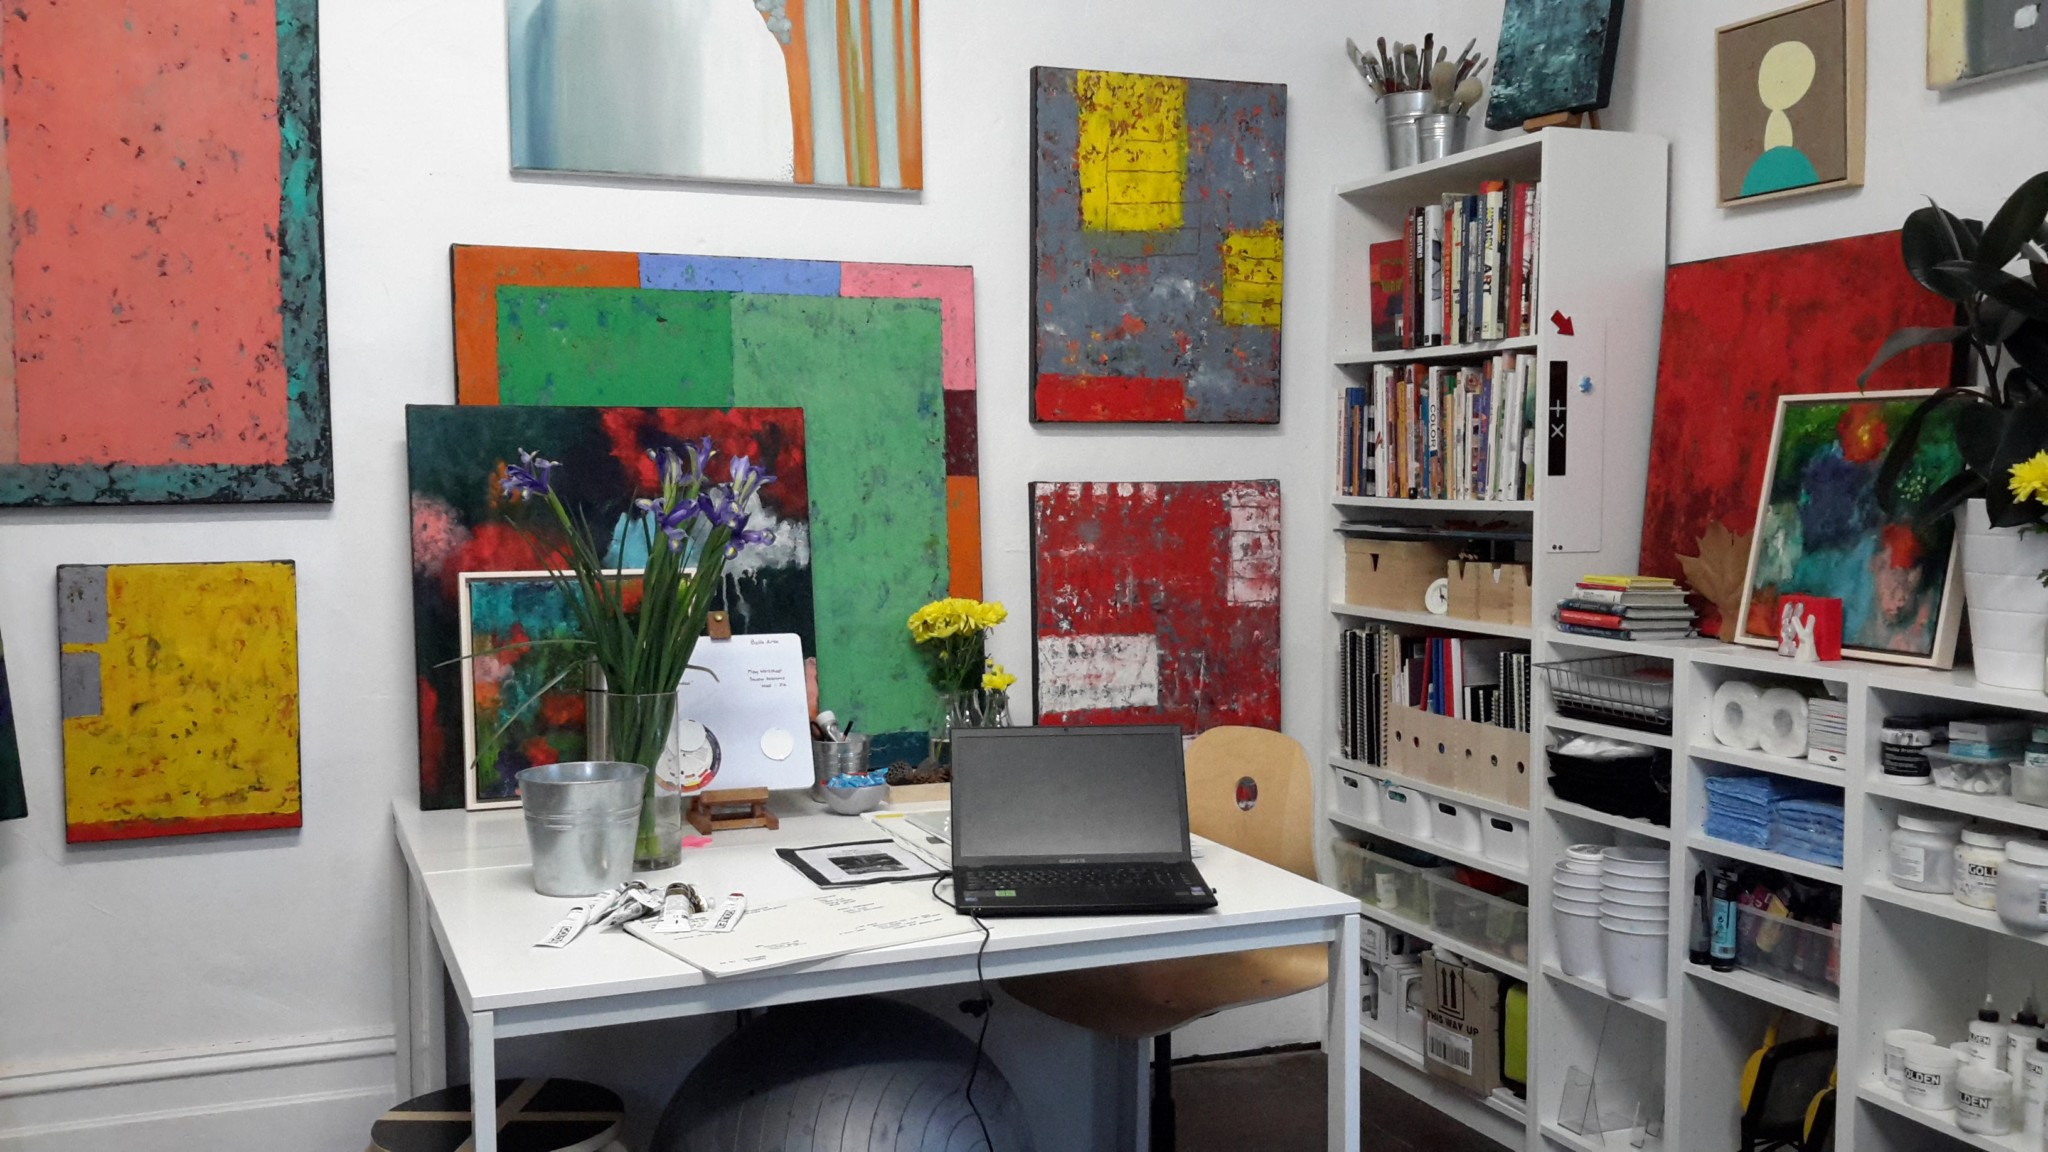 Maggie's studio at Wairoa - May 2016 clean workspace